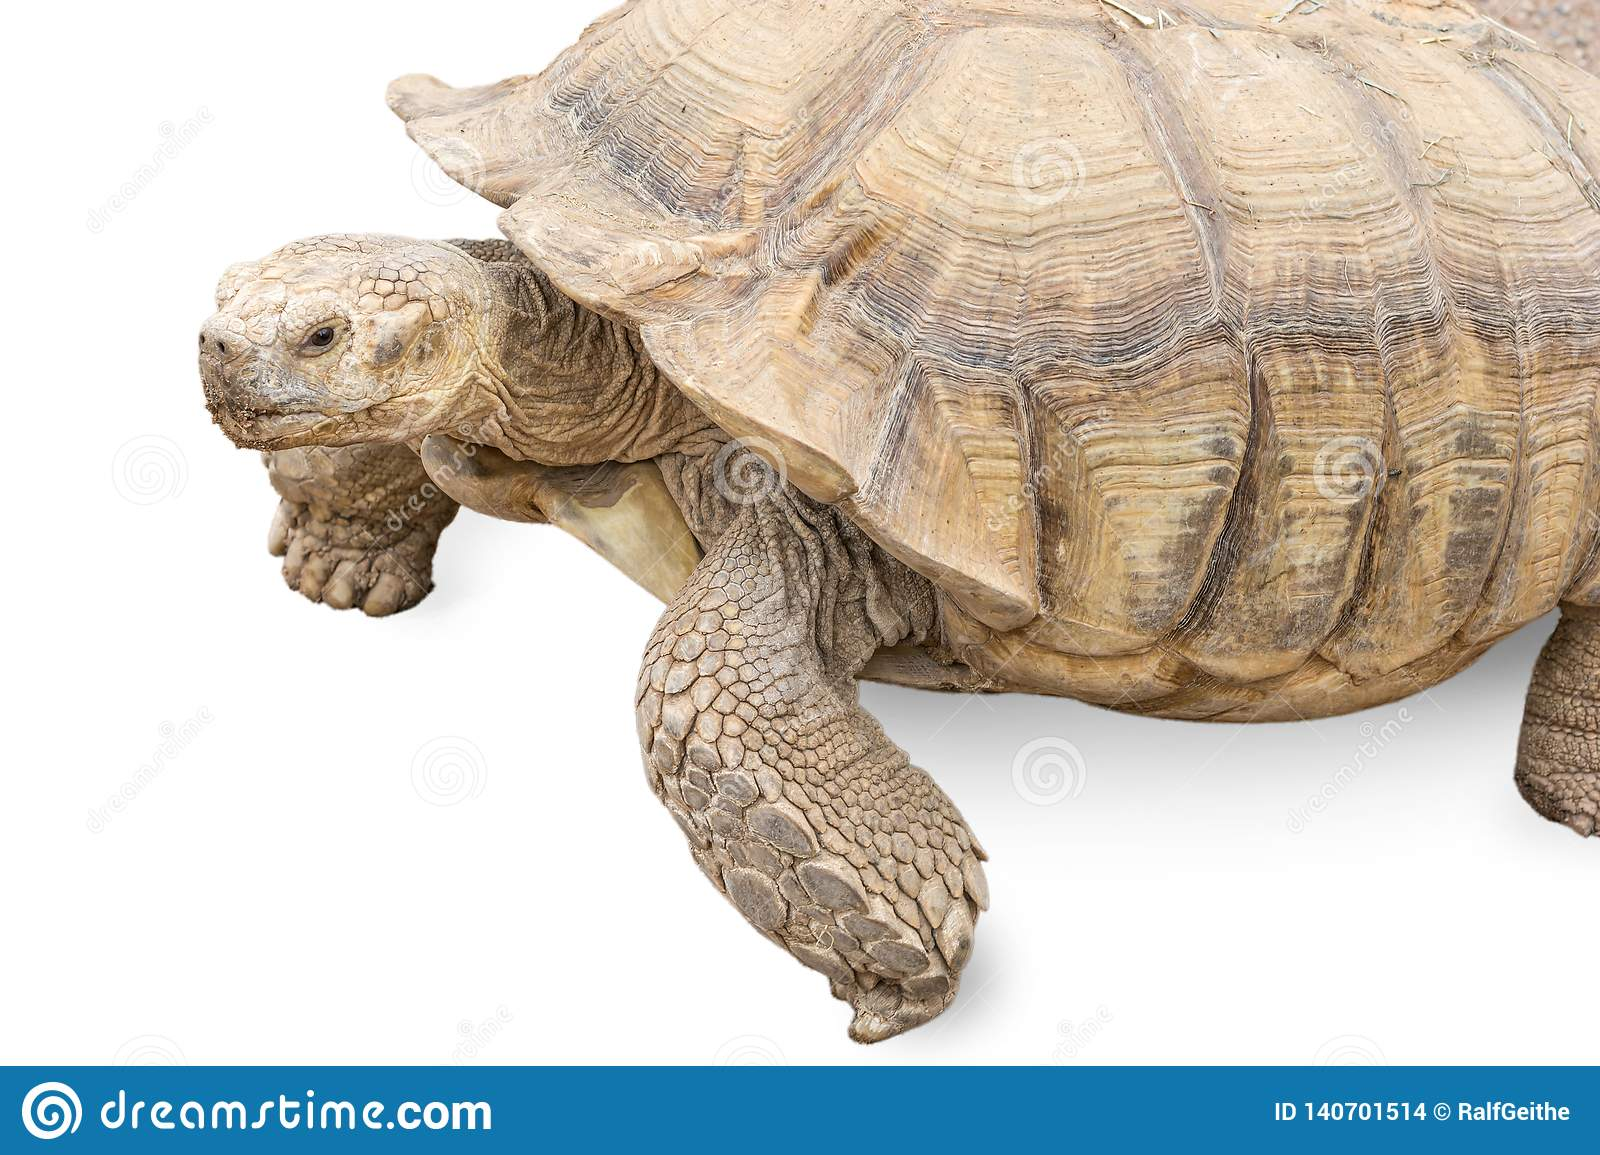 Isolated turtle as a metaphor for slowness and time management